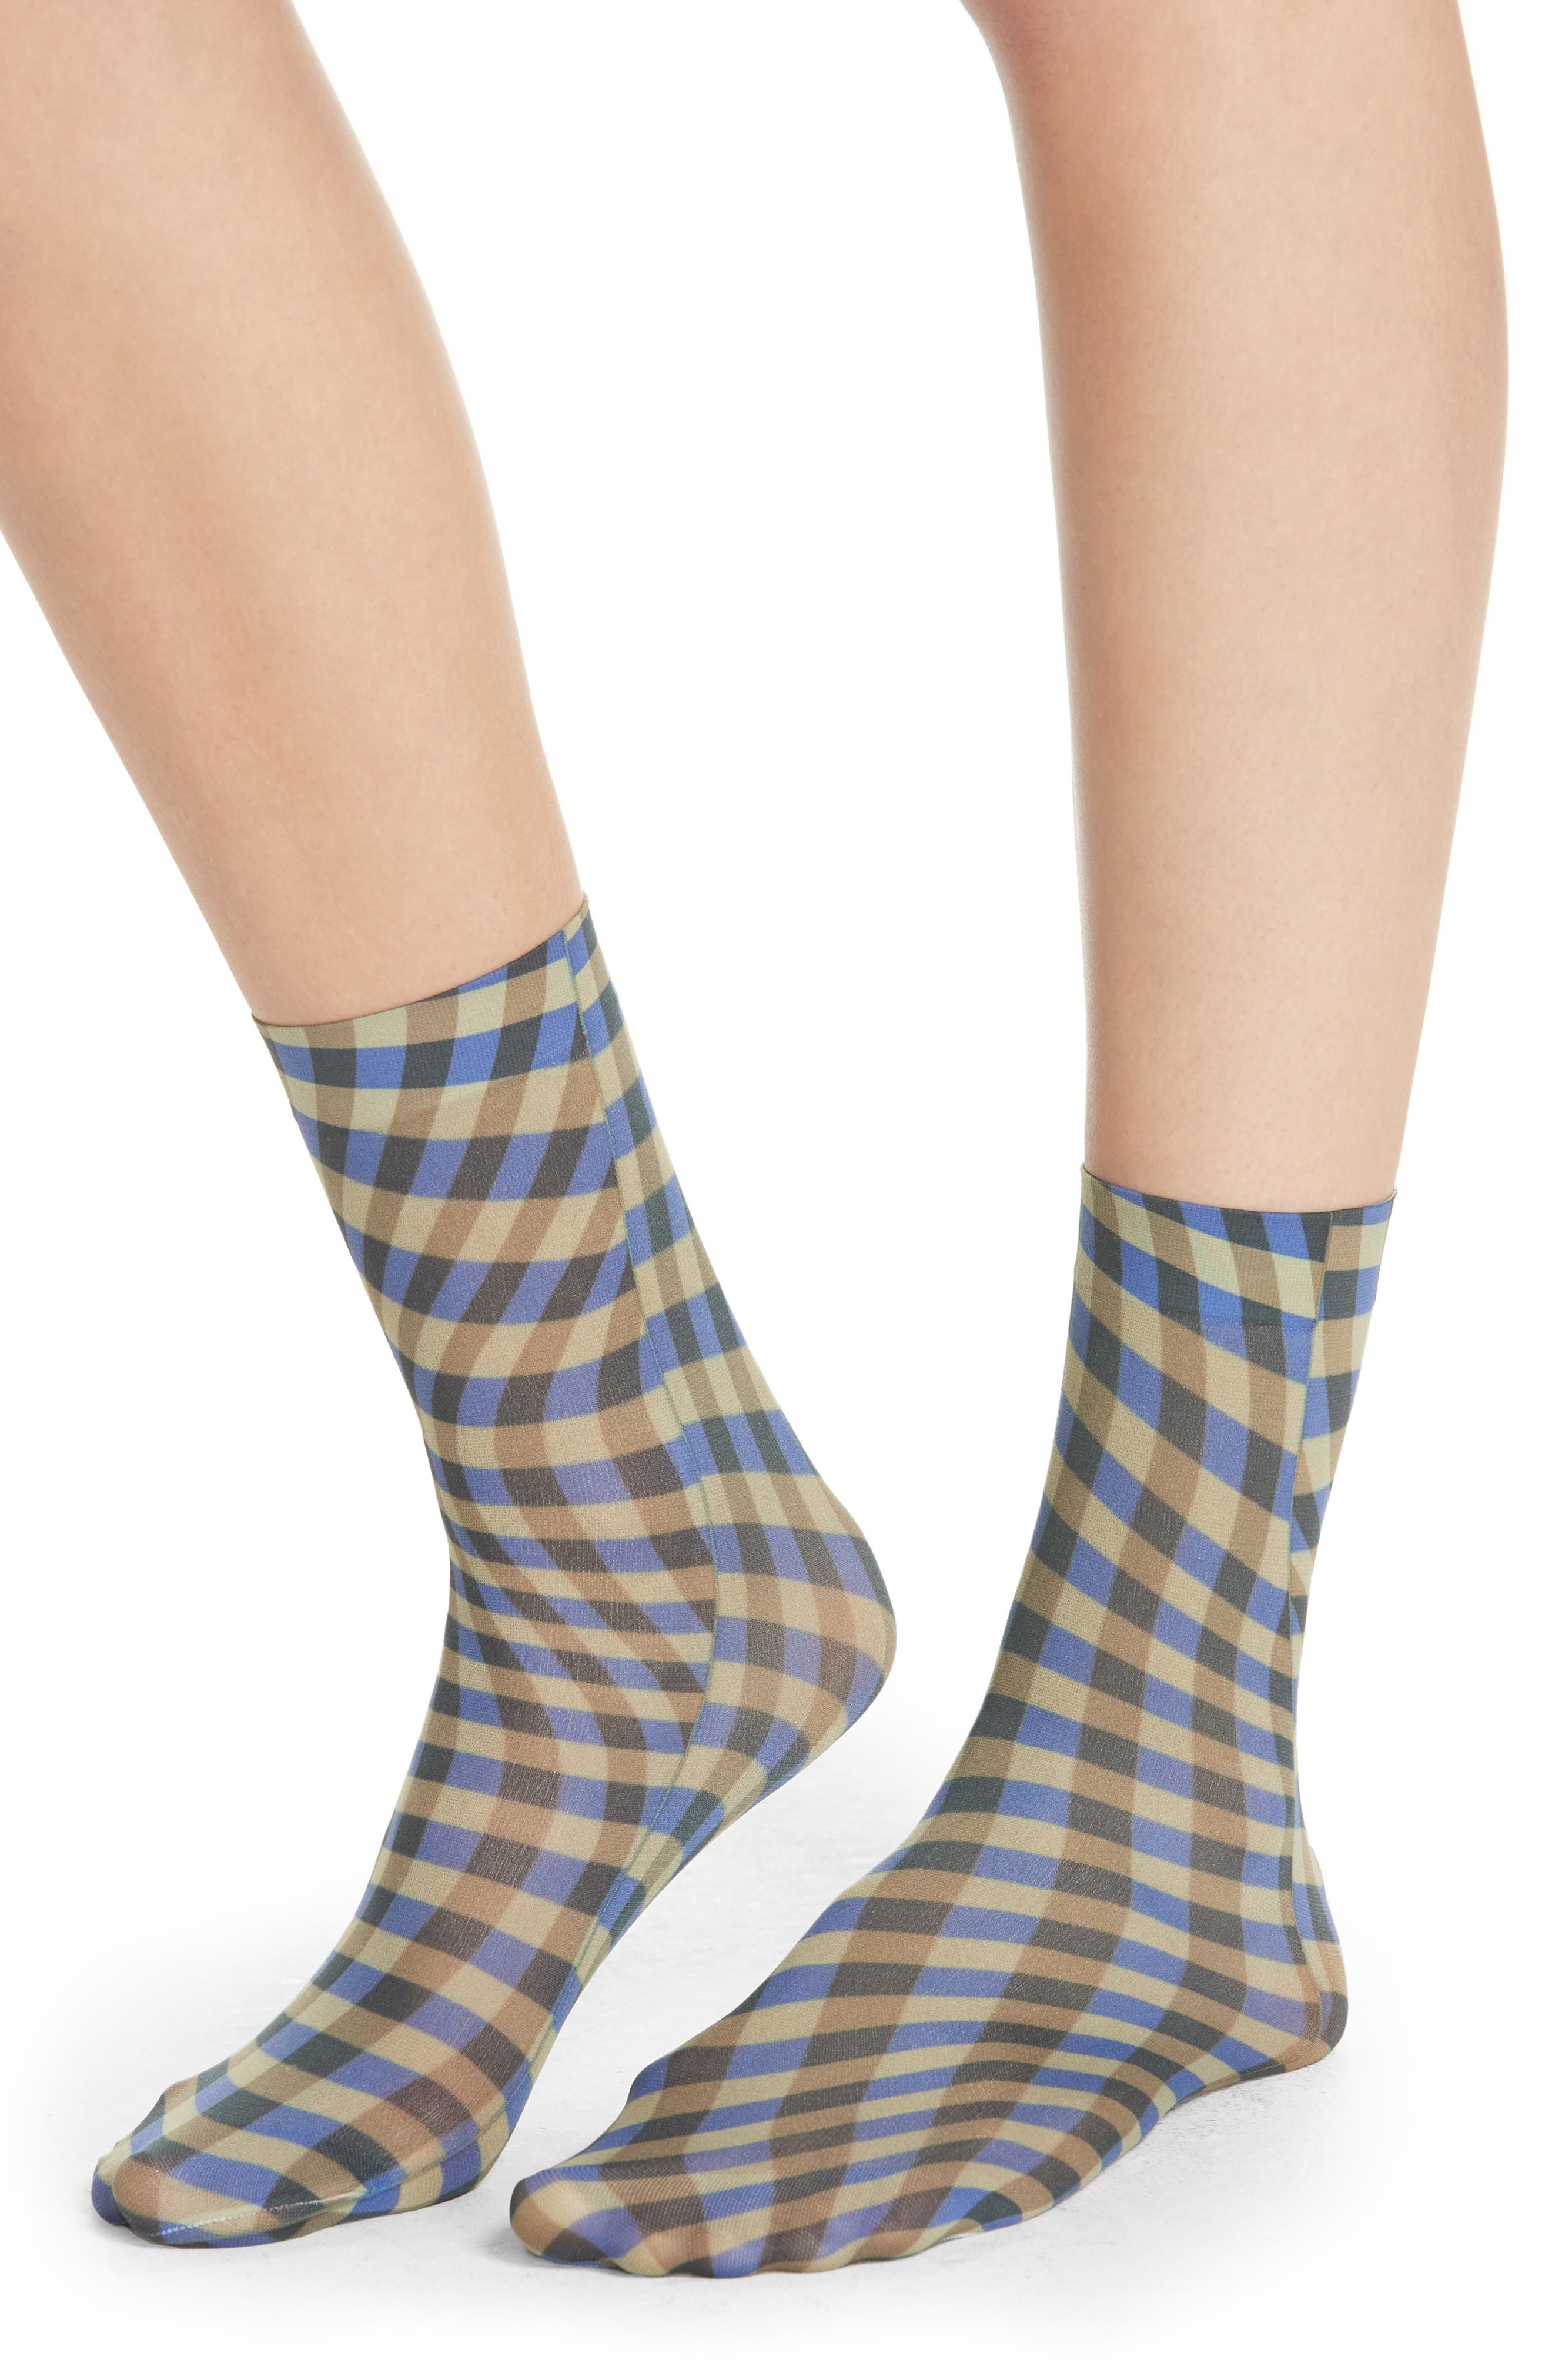 Bojana Print Socks,                         Main,                         color, 300